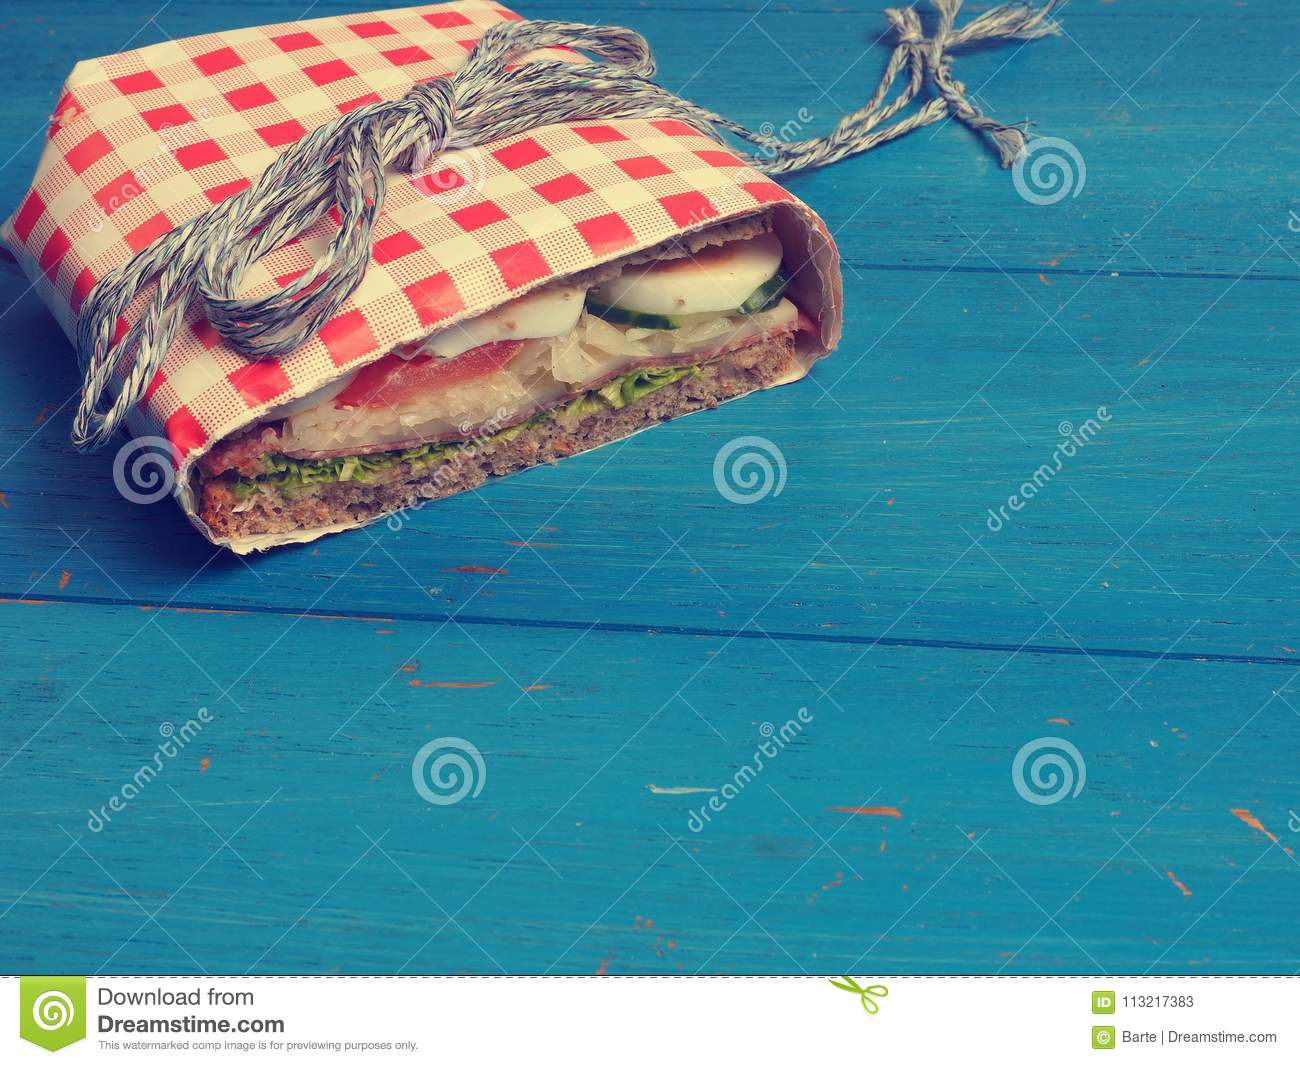 Tasty Sandwich On A Blue Table Stock Image - Image of healthy ...